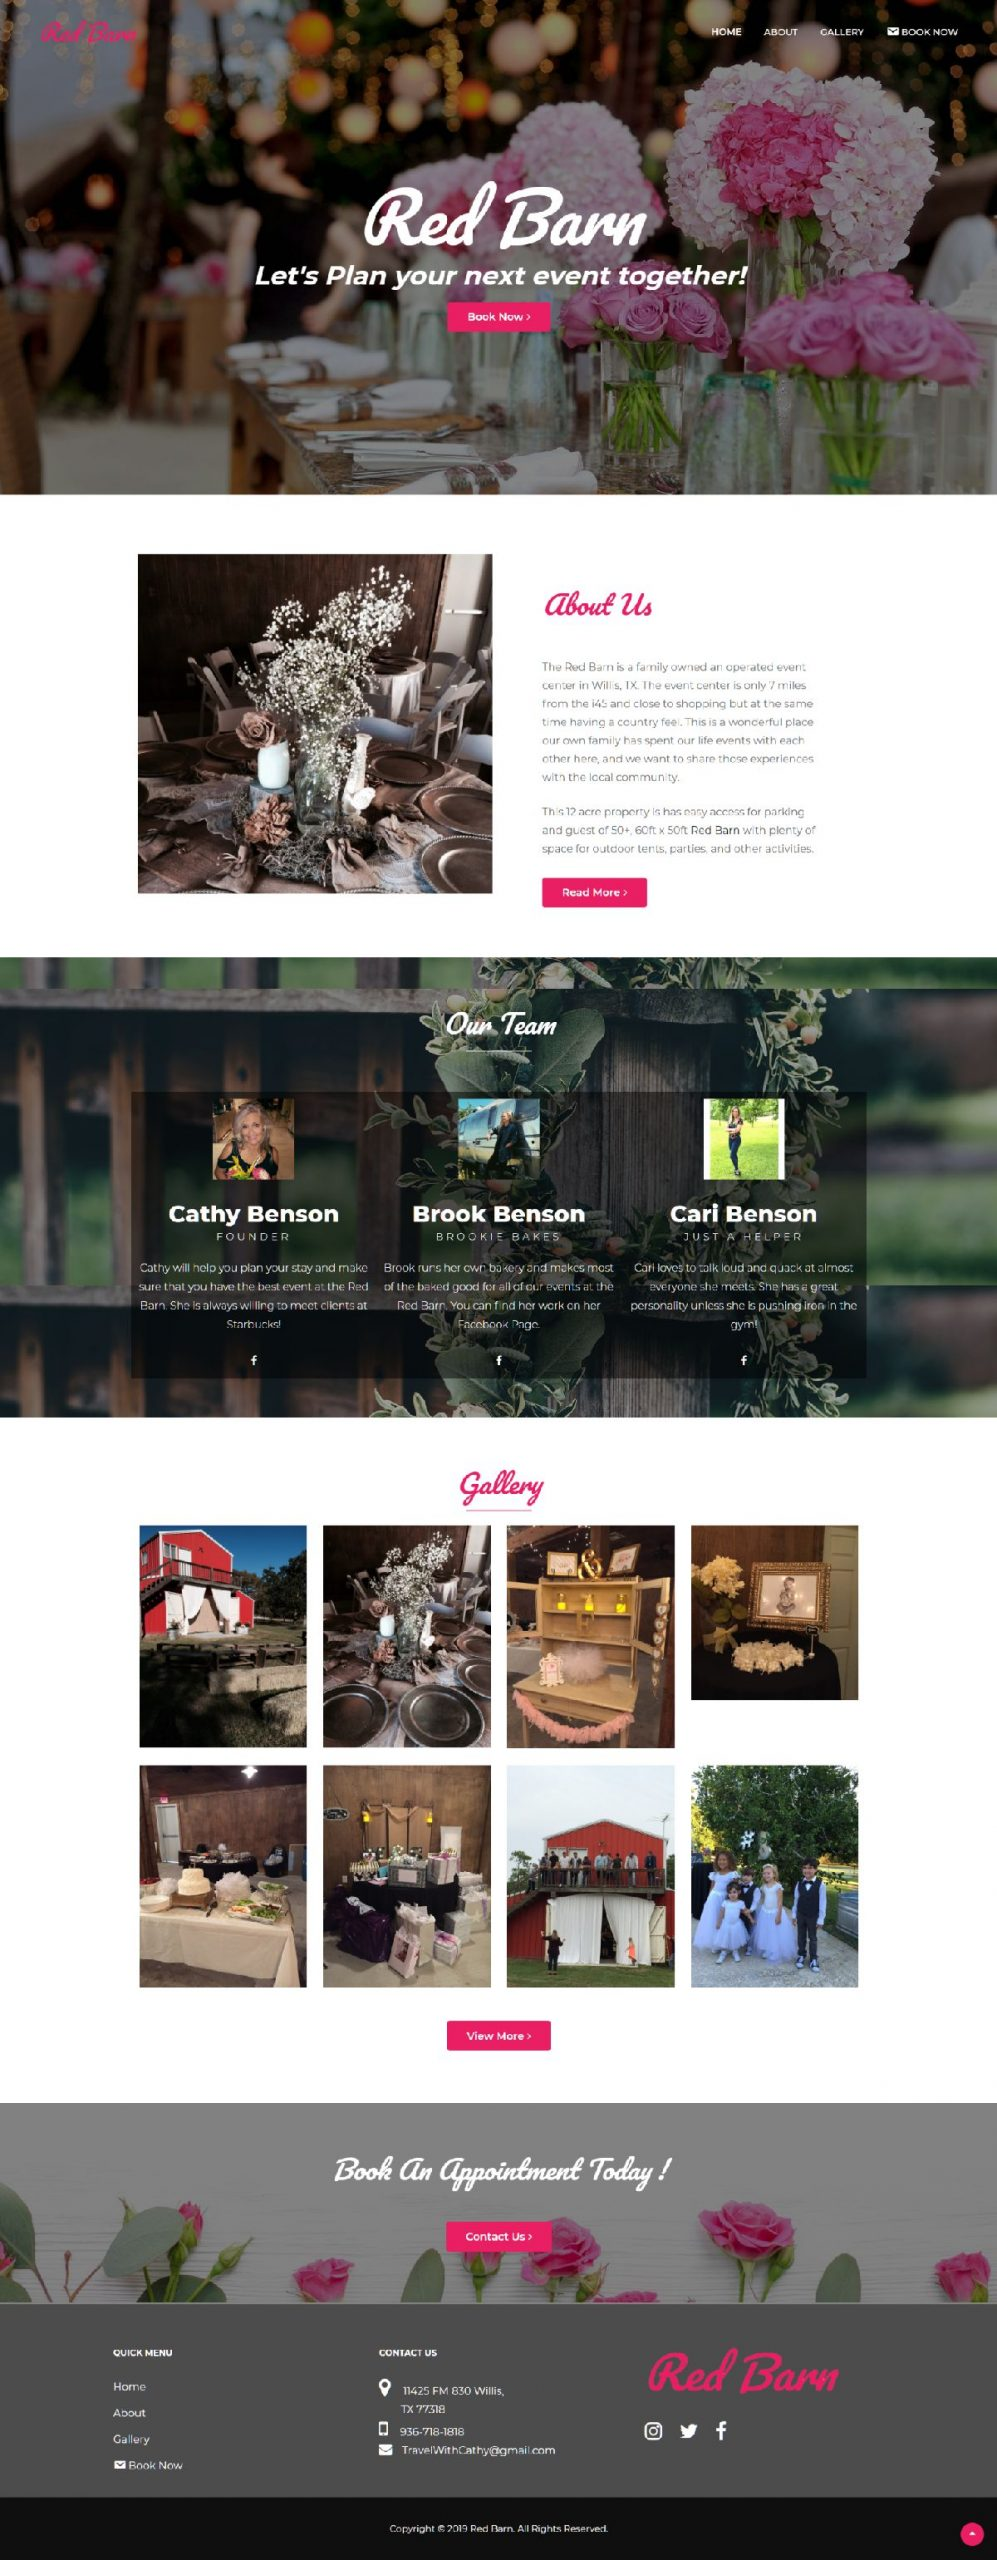 Rent My Red Barn local business web design conroe